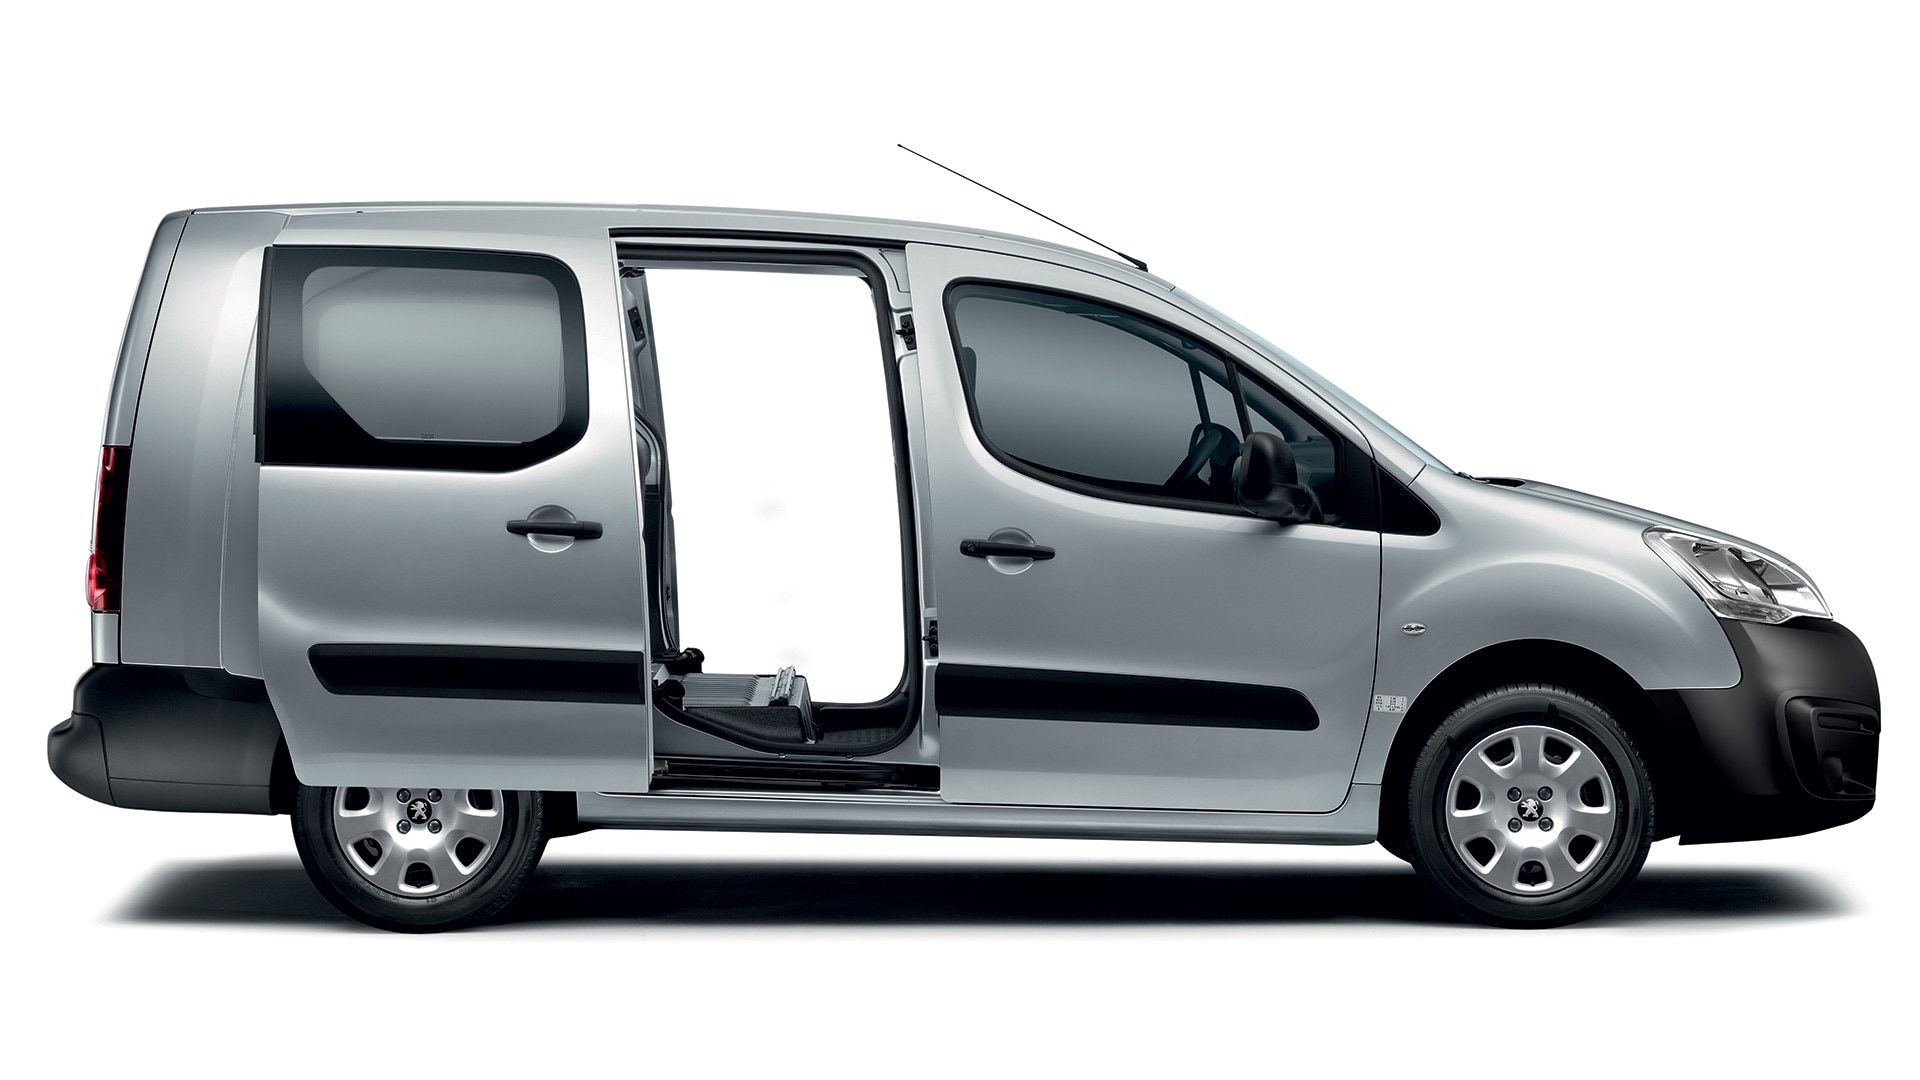 Peugeot partner showroom small work van test drive today photos aloadofball Image collections